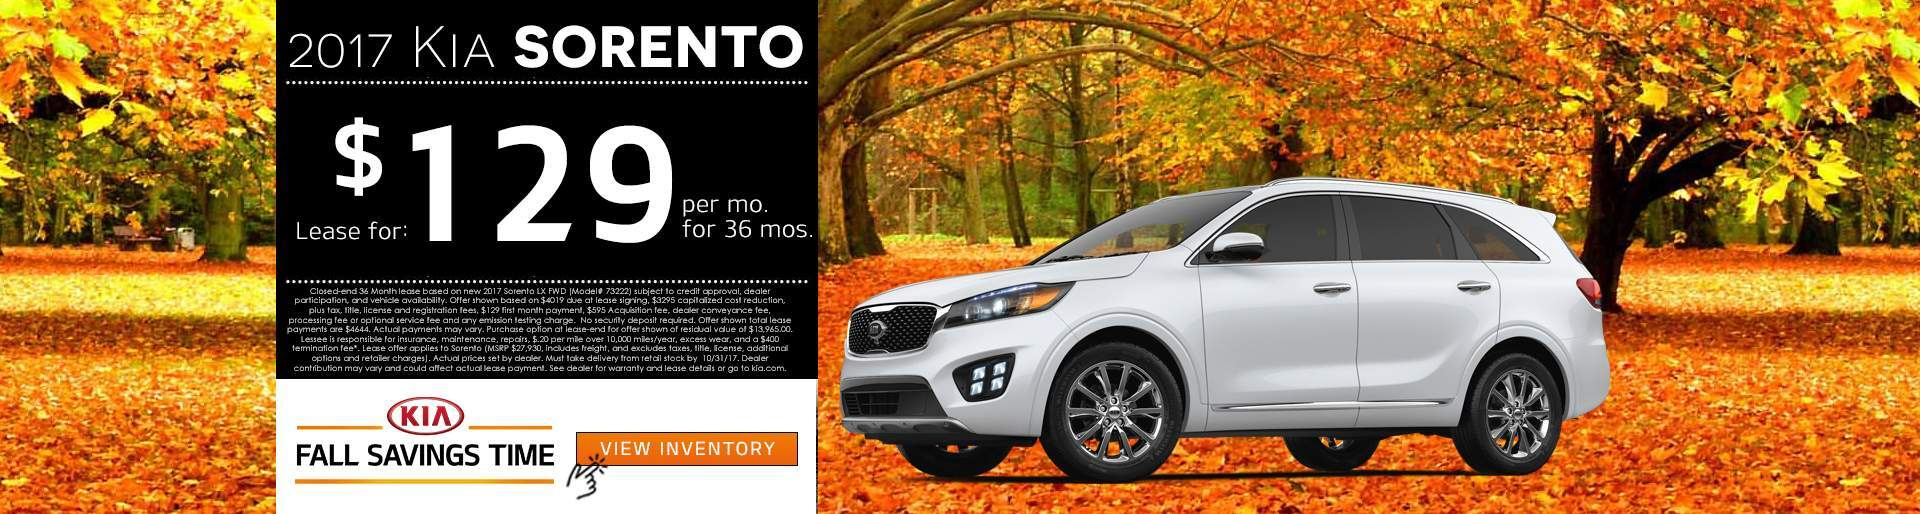 2017 Kia Sorento Lease Offer